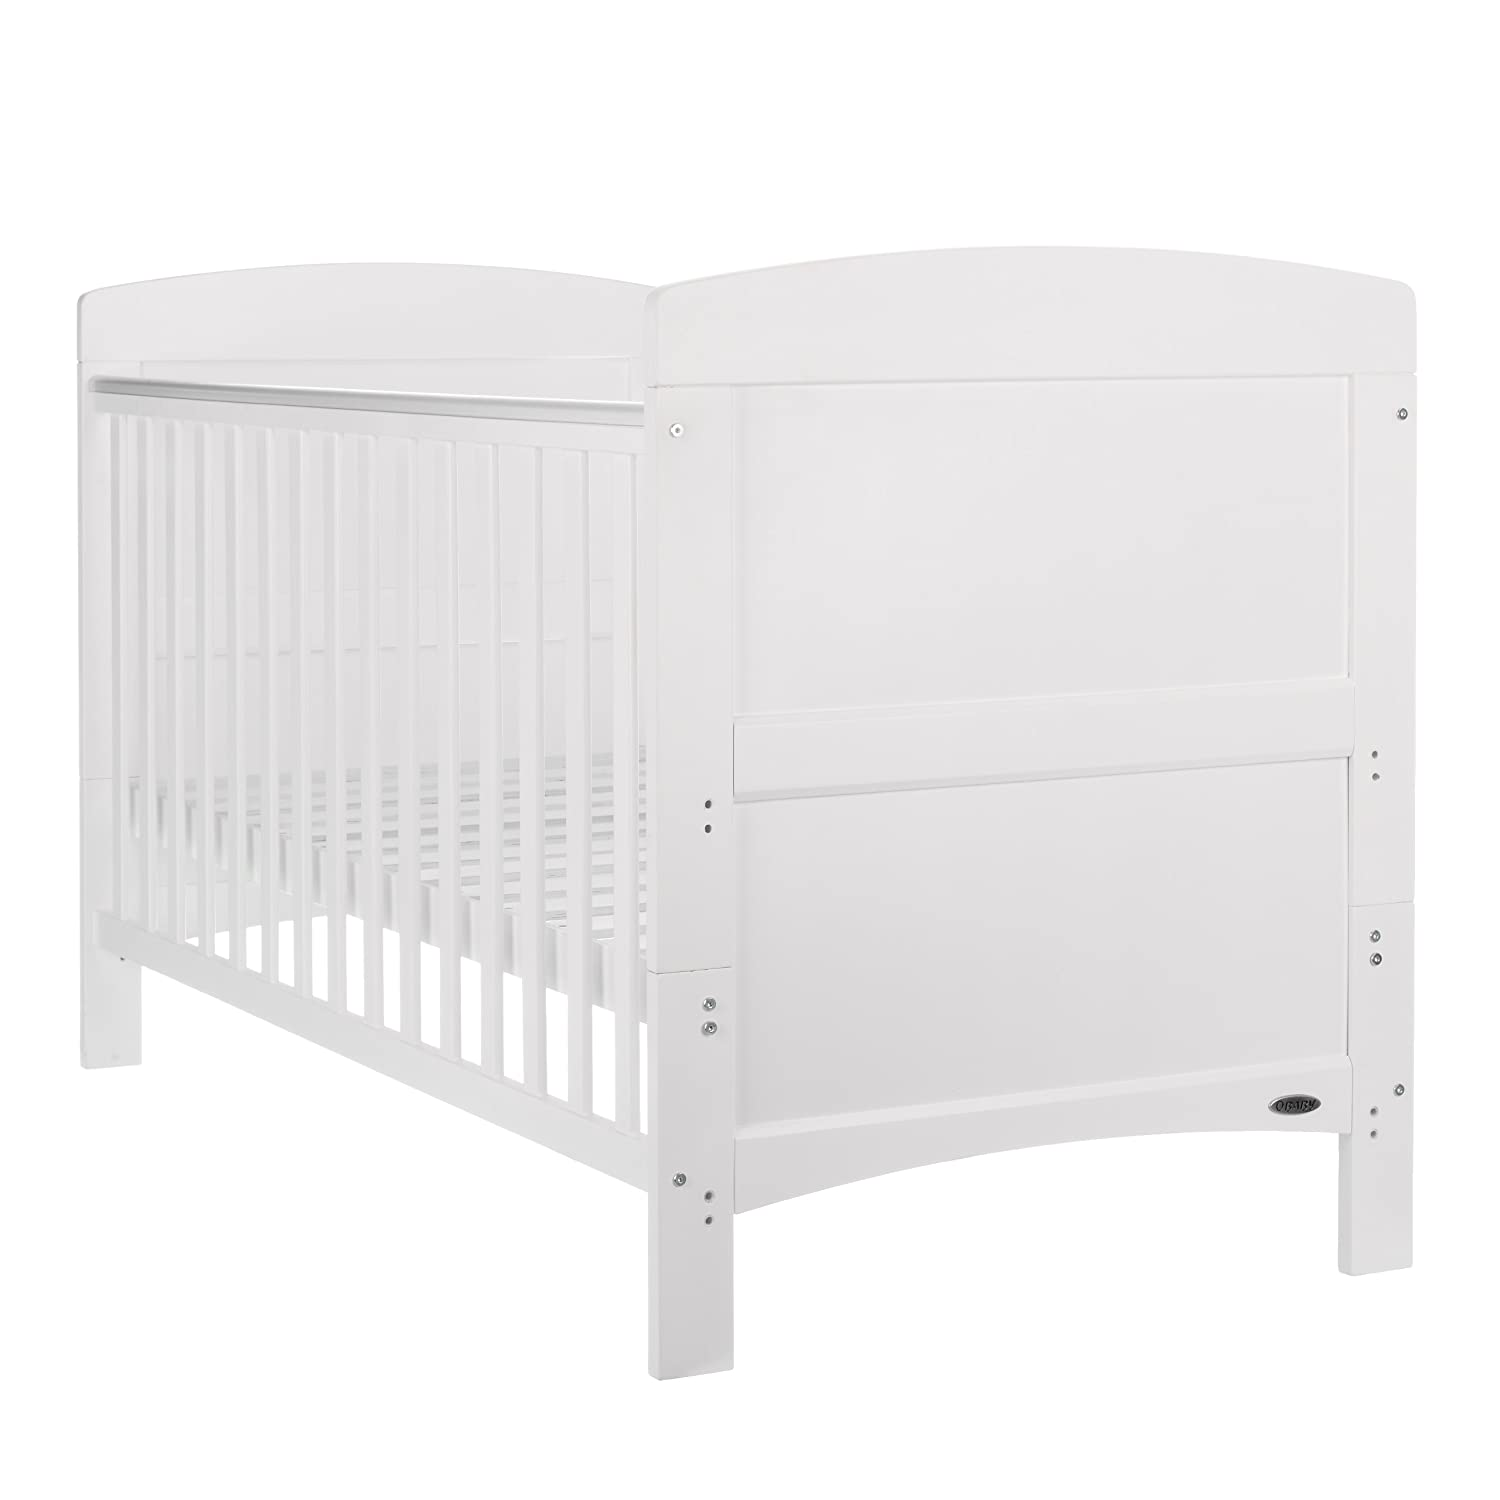 Obaby Grace Cot Bed - Walnut 21OB2105